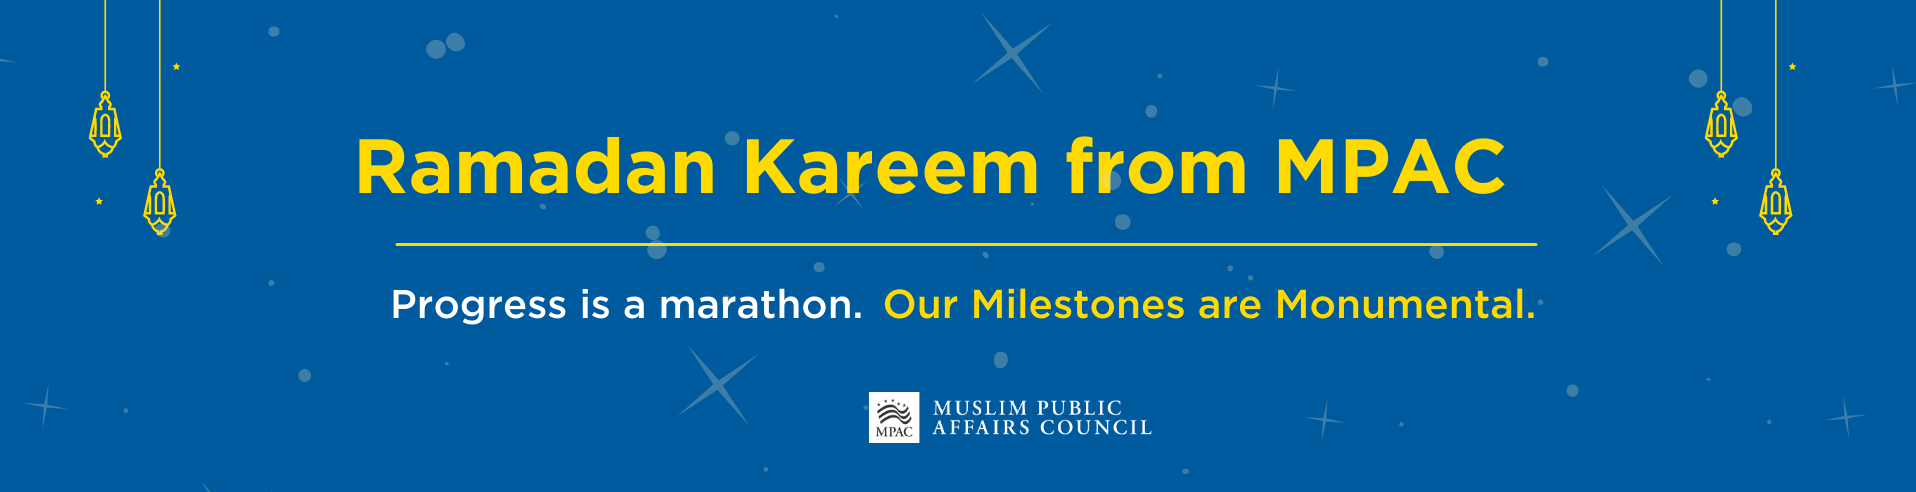 Progress is a Marathon: Donate to MPAC this Ramadan